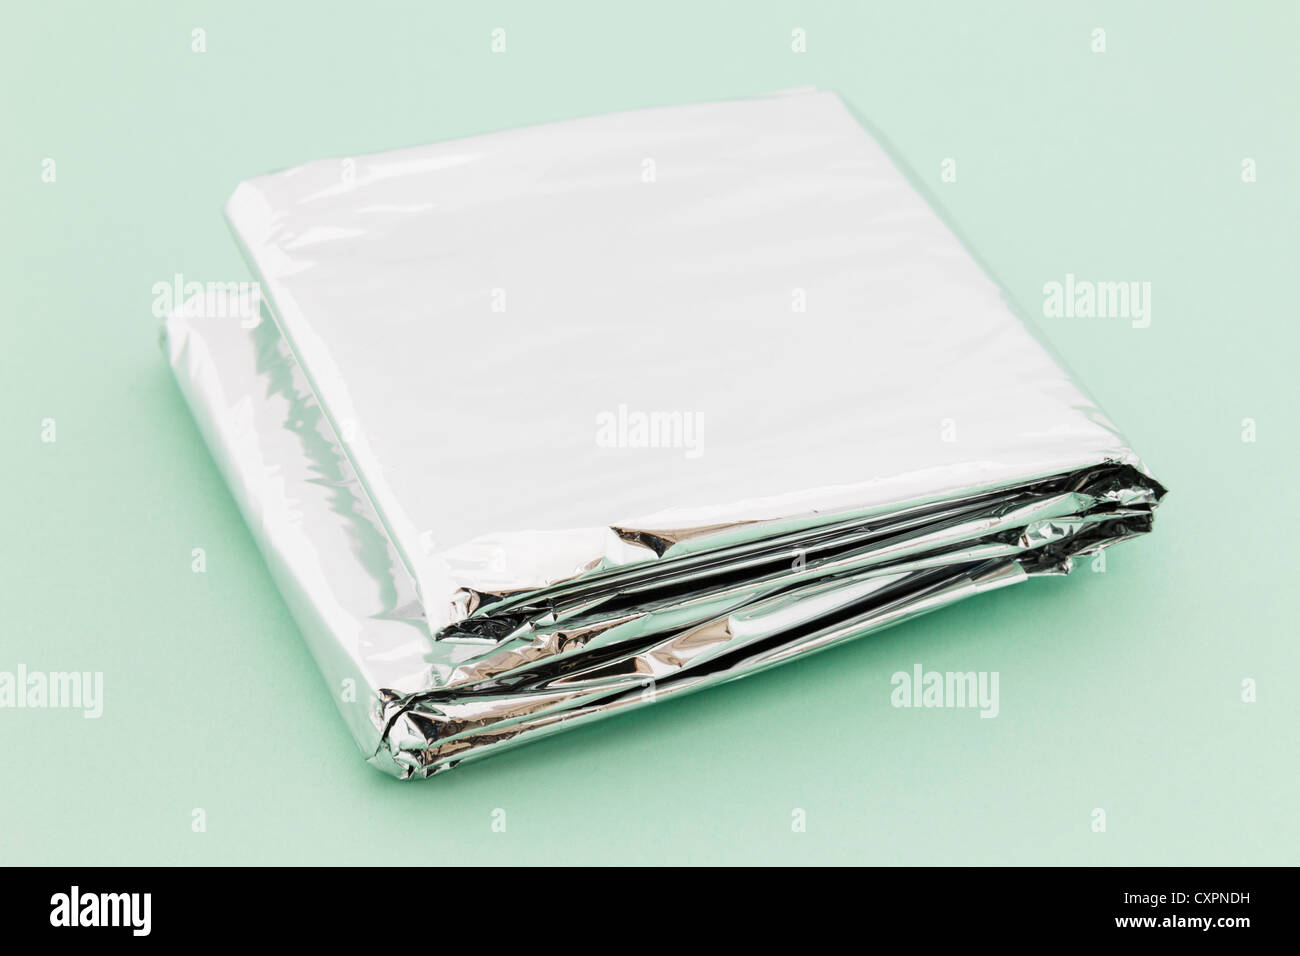 Foil Insulation Blanket Insulating Foil Emergency Blanket Folded Up On A Green Background